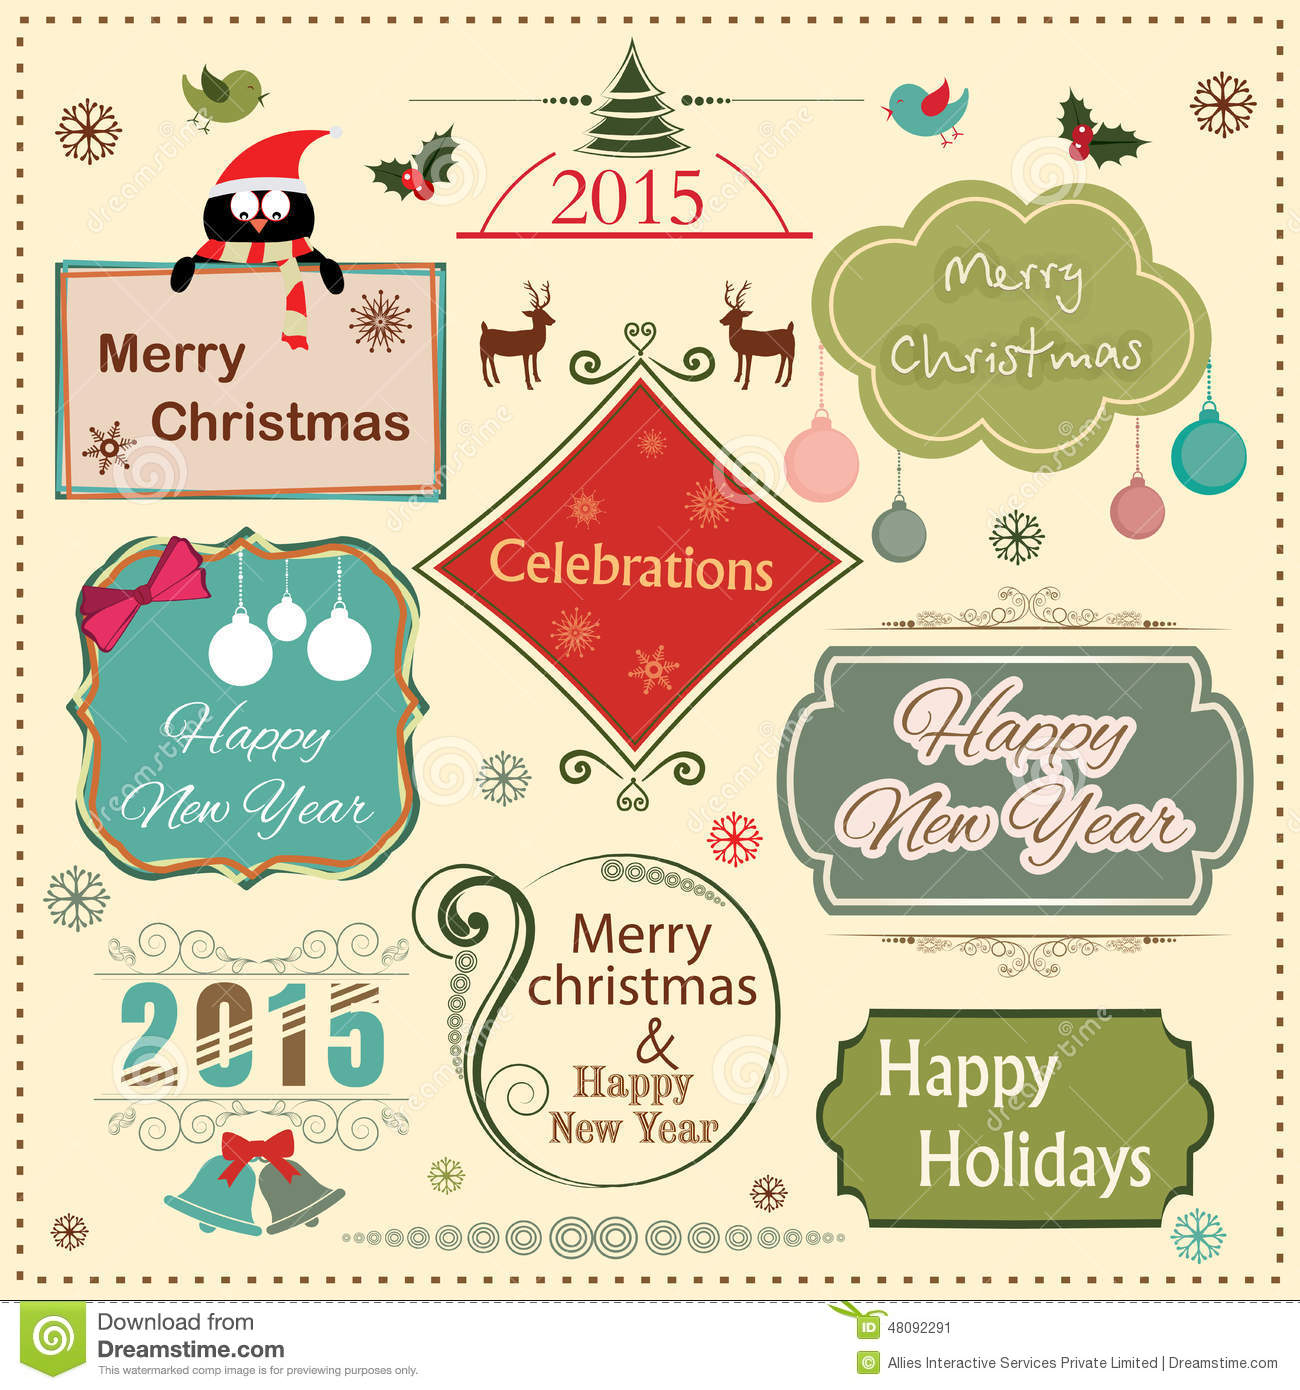 happy new year 2015 and merry christmas celebration